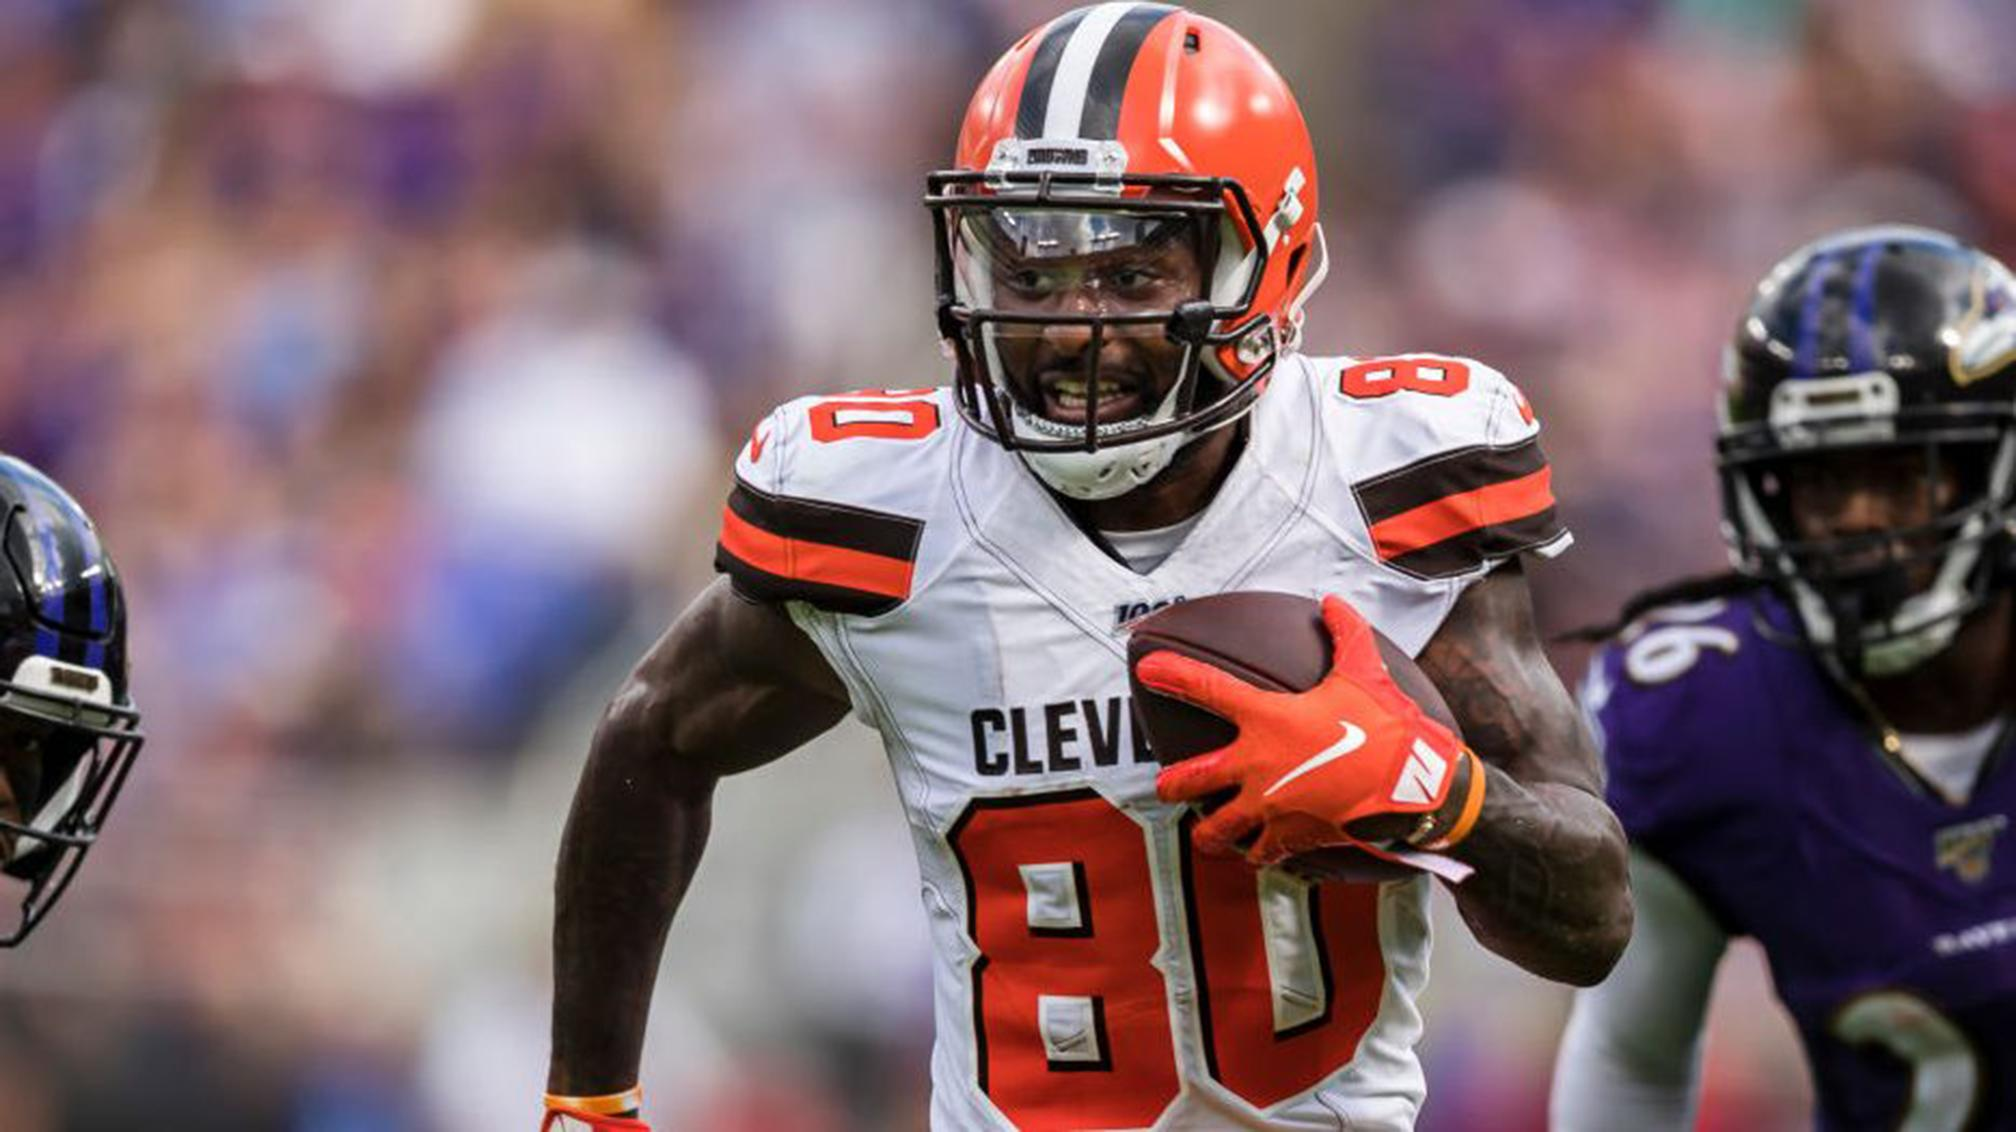 NFL Week 14 WR/CB Matchups and TE Analysis